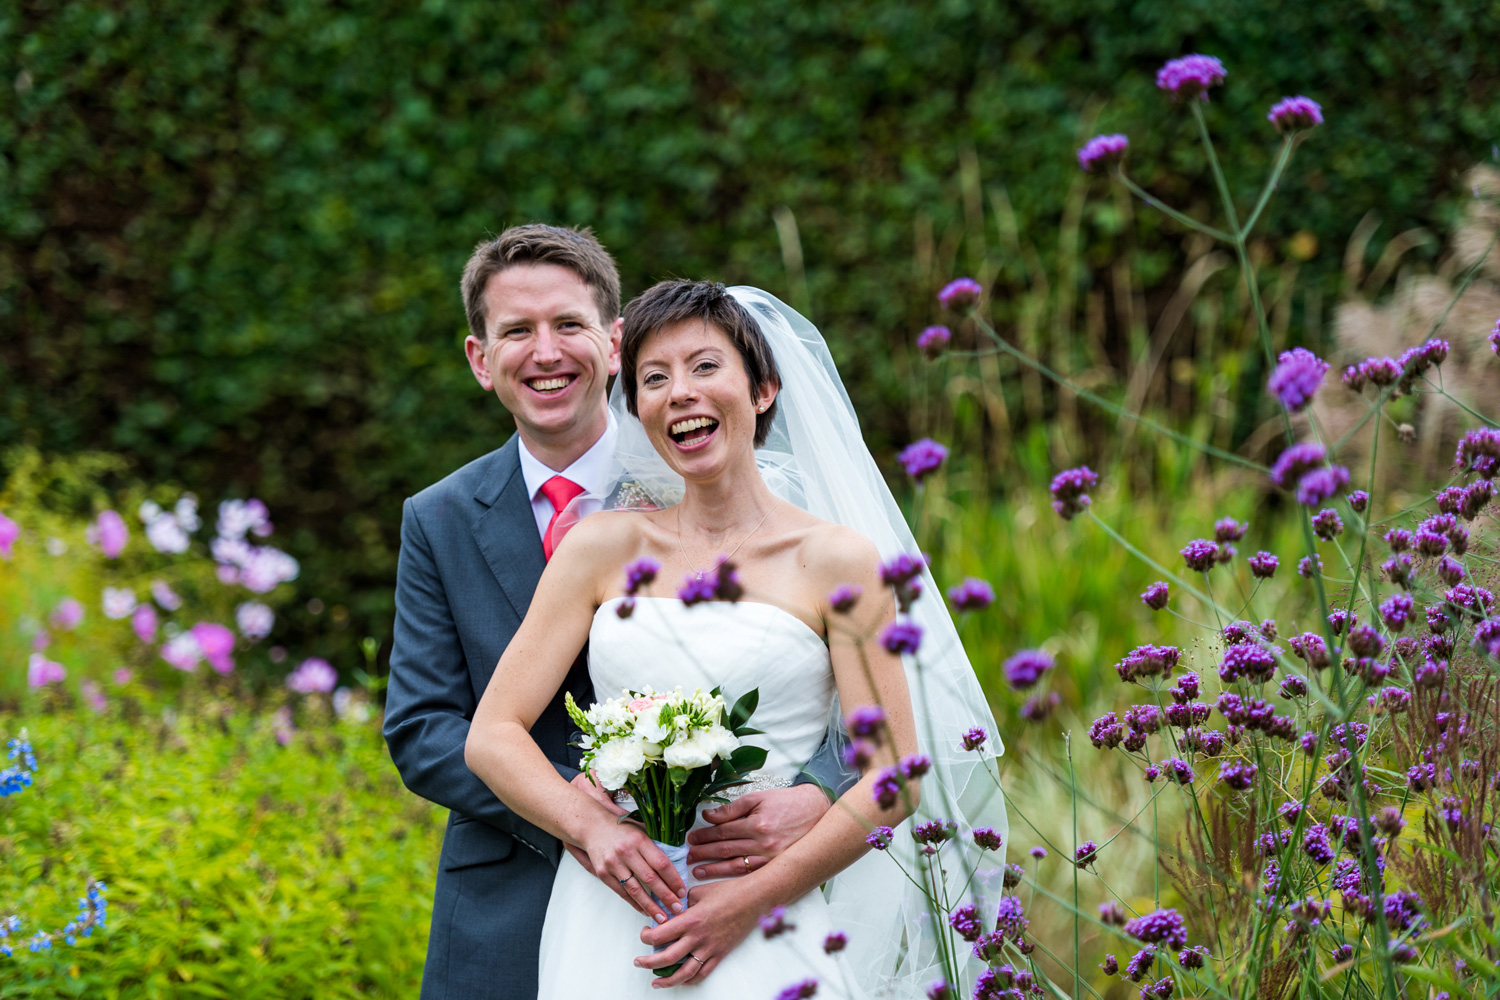 colourful portrait of bride and groom